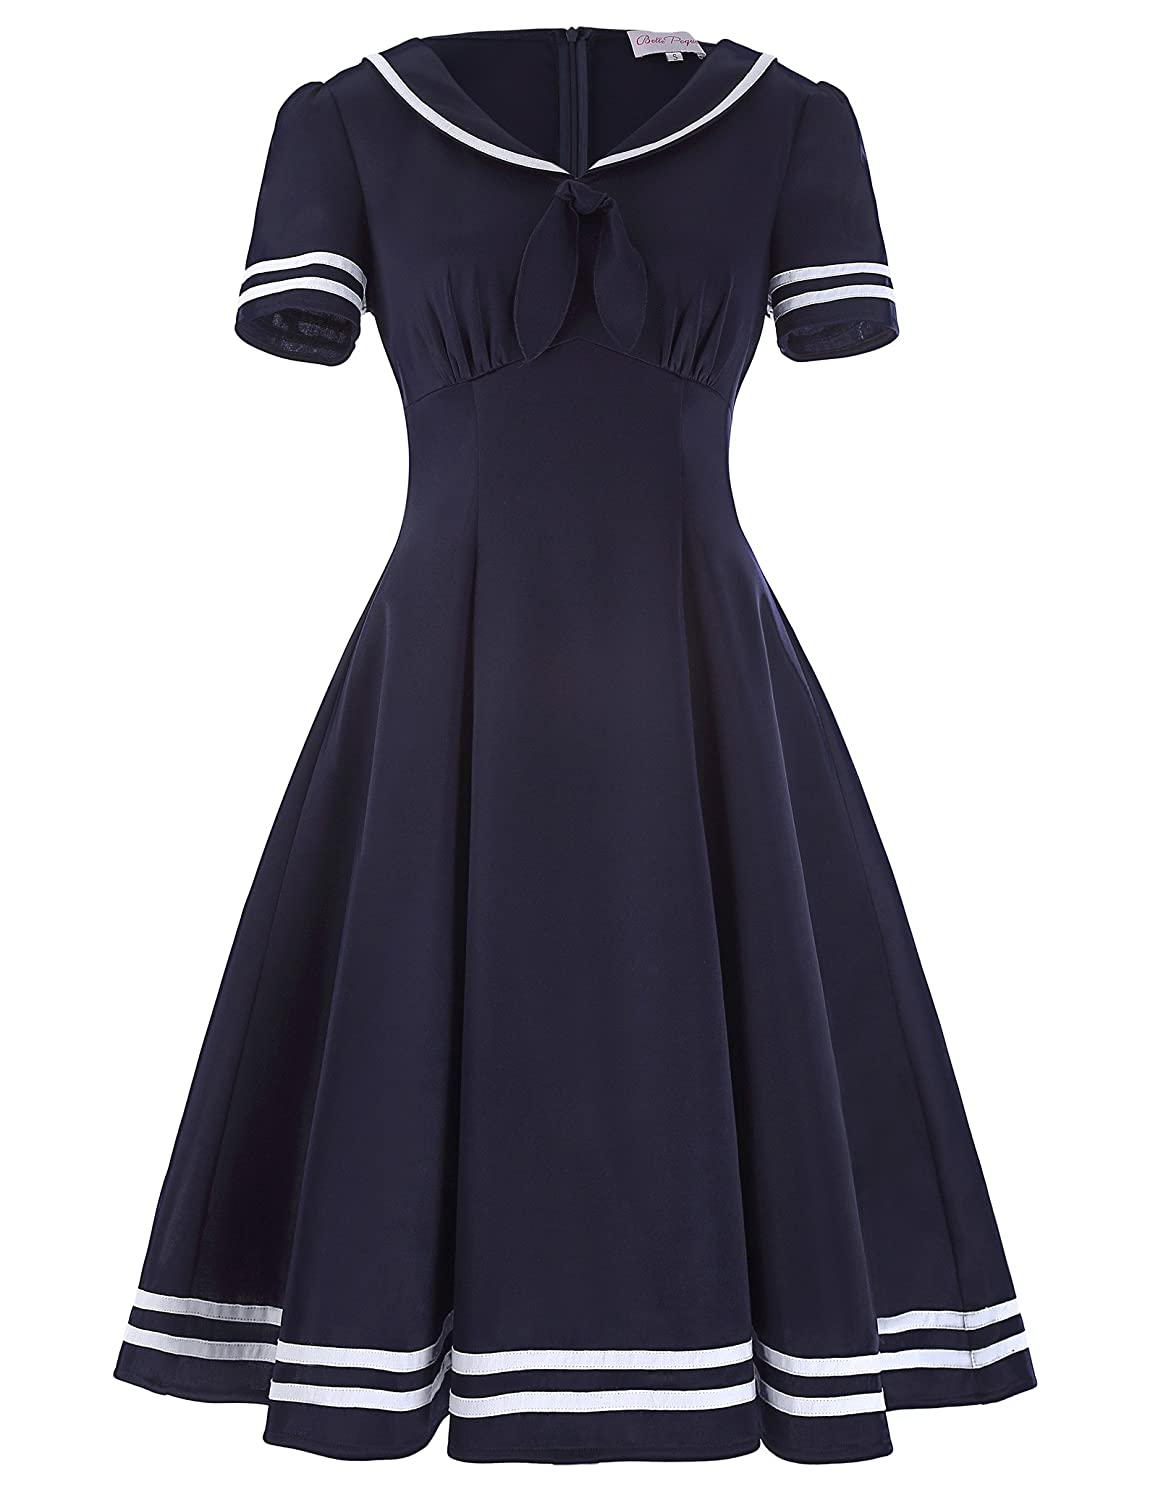 Swing Dance Clothing You Can Dance In Belle Poque Womens Retro Sailor Dress Short Sleeve Cocktail Party Swing Dress $29.99 AT vintagedancer.com